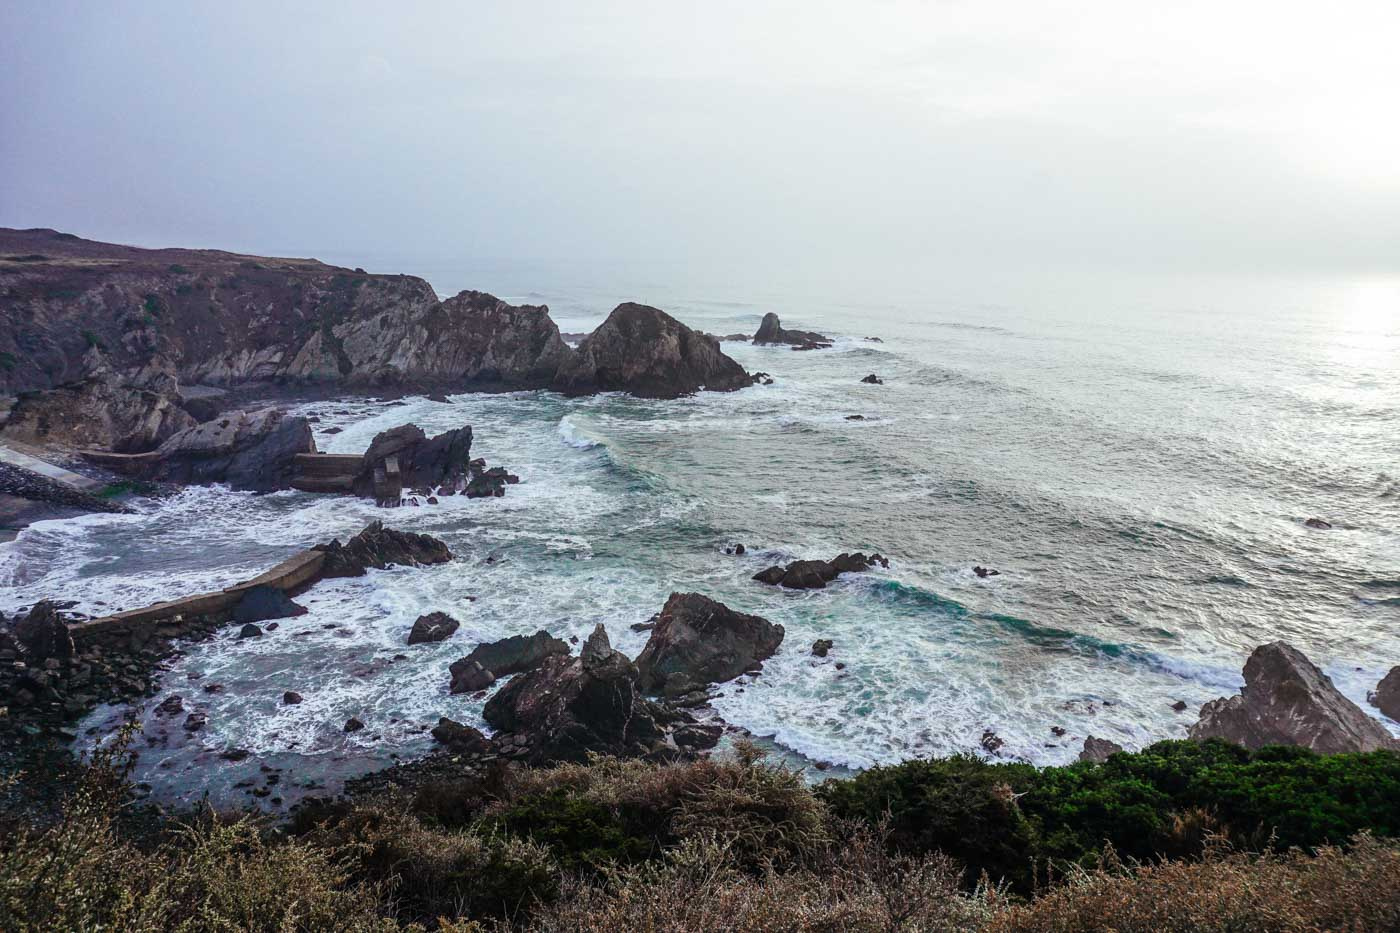 Azenha do Mar - Secret spots in the Alentejo, Portugal #portugal #travelphotography #traveldestinations